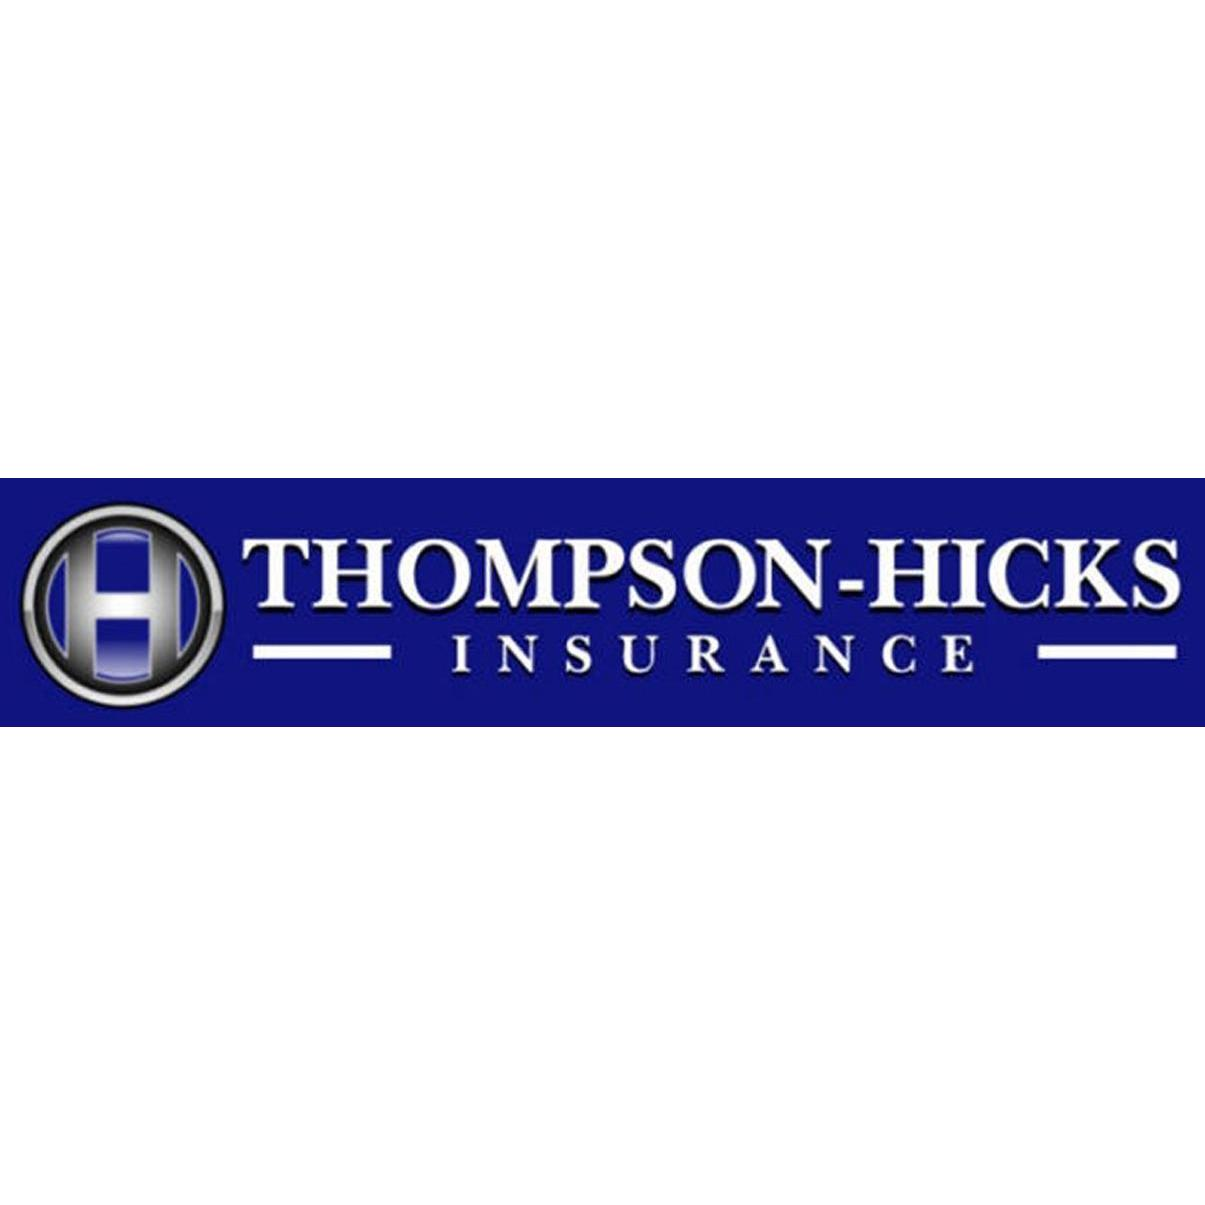 Thompson-Hicks Insurance